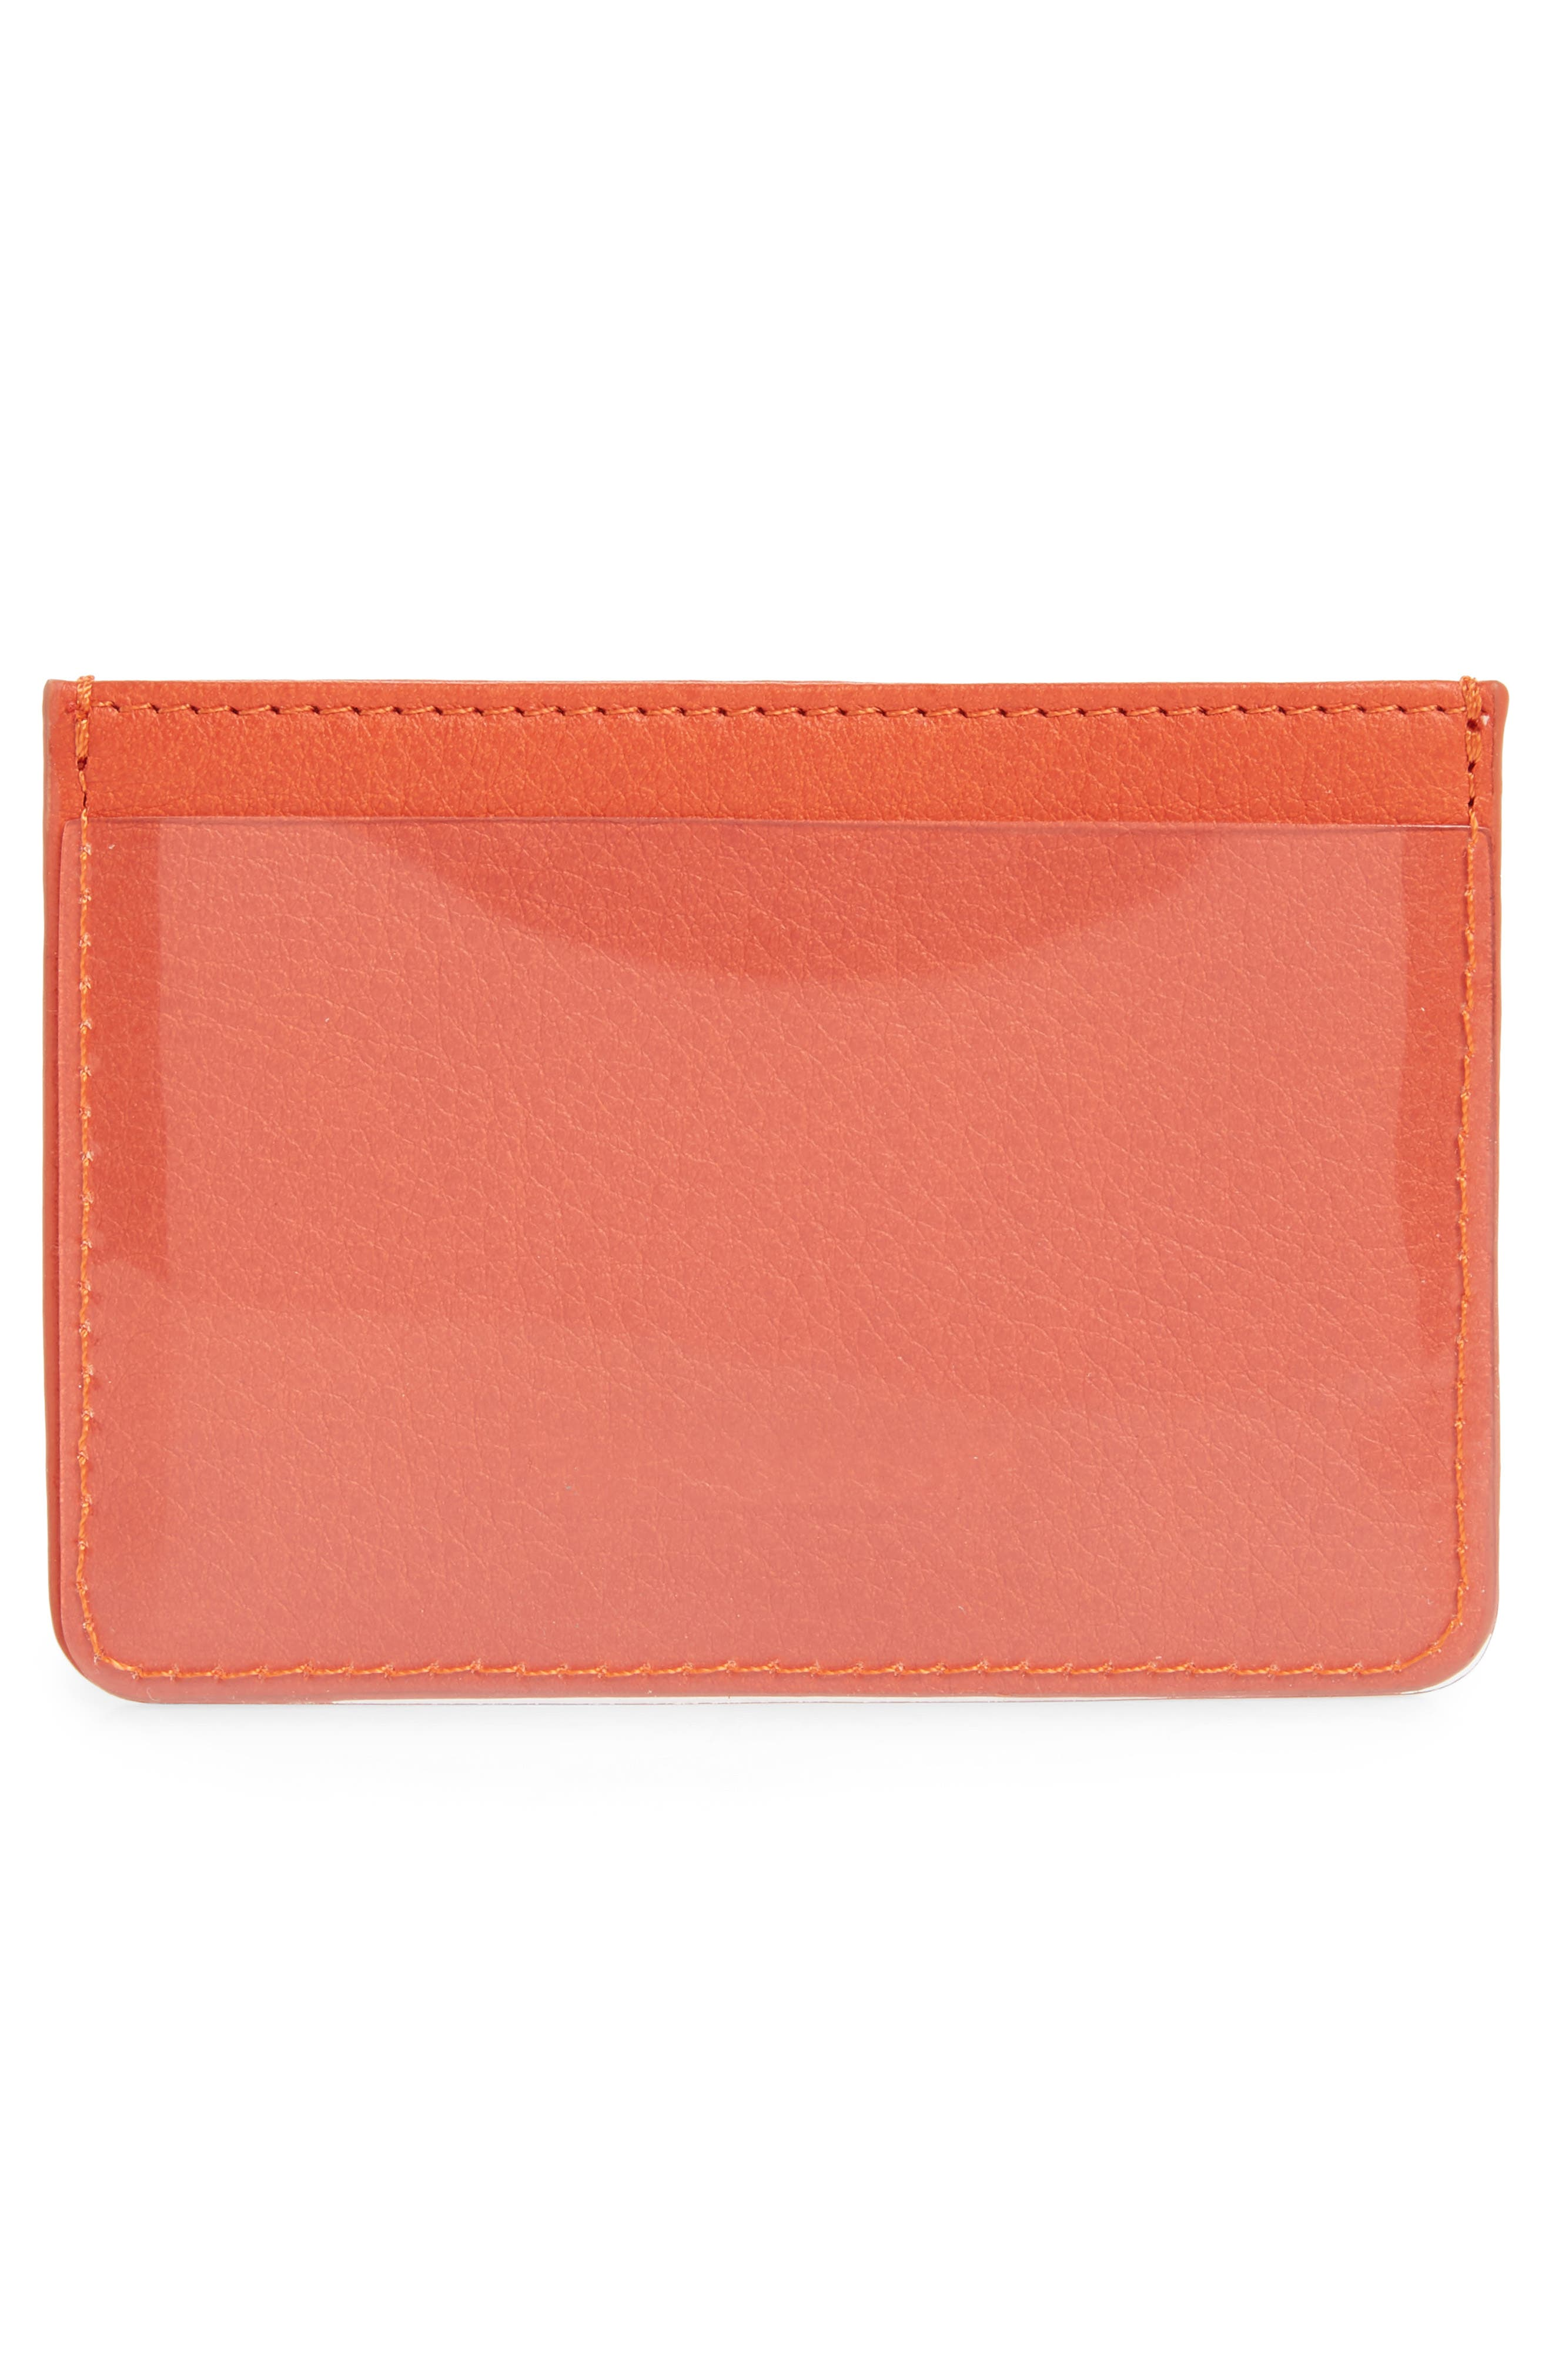 Privacy Leather Card Case,                             Alternate thumbnail 3, color,                             POPPY